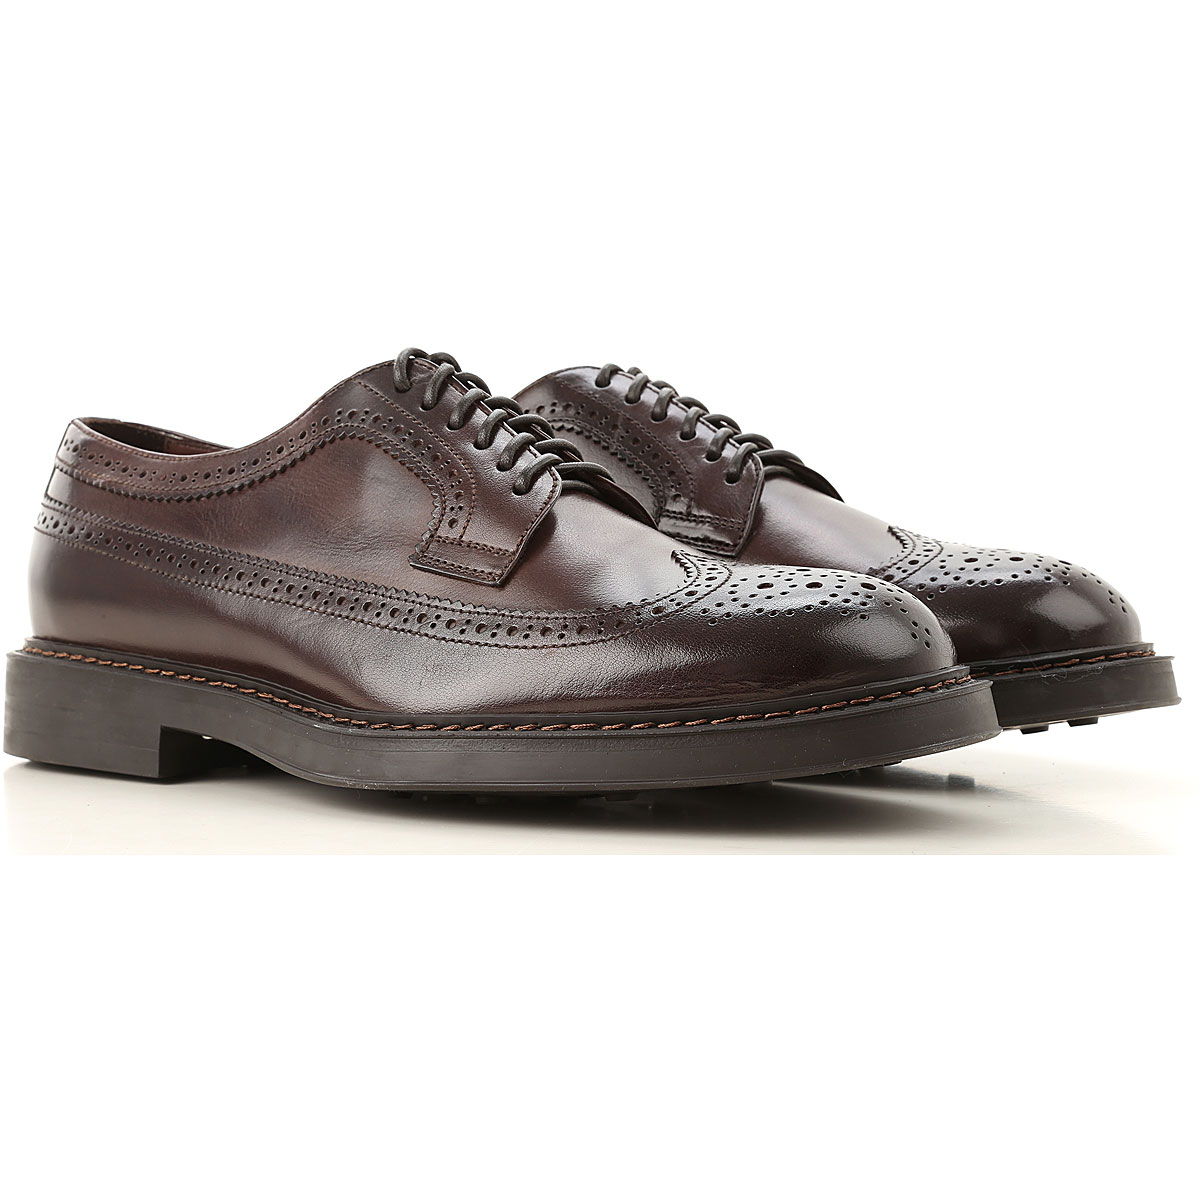 Doucals Lace Up Shoes for Men Oxfords, Derbies and Brogues, Dark Brown, Leather, 2019, 10 11.5 7.5 8 9